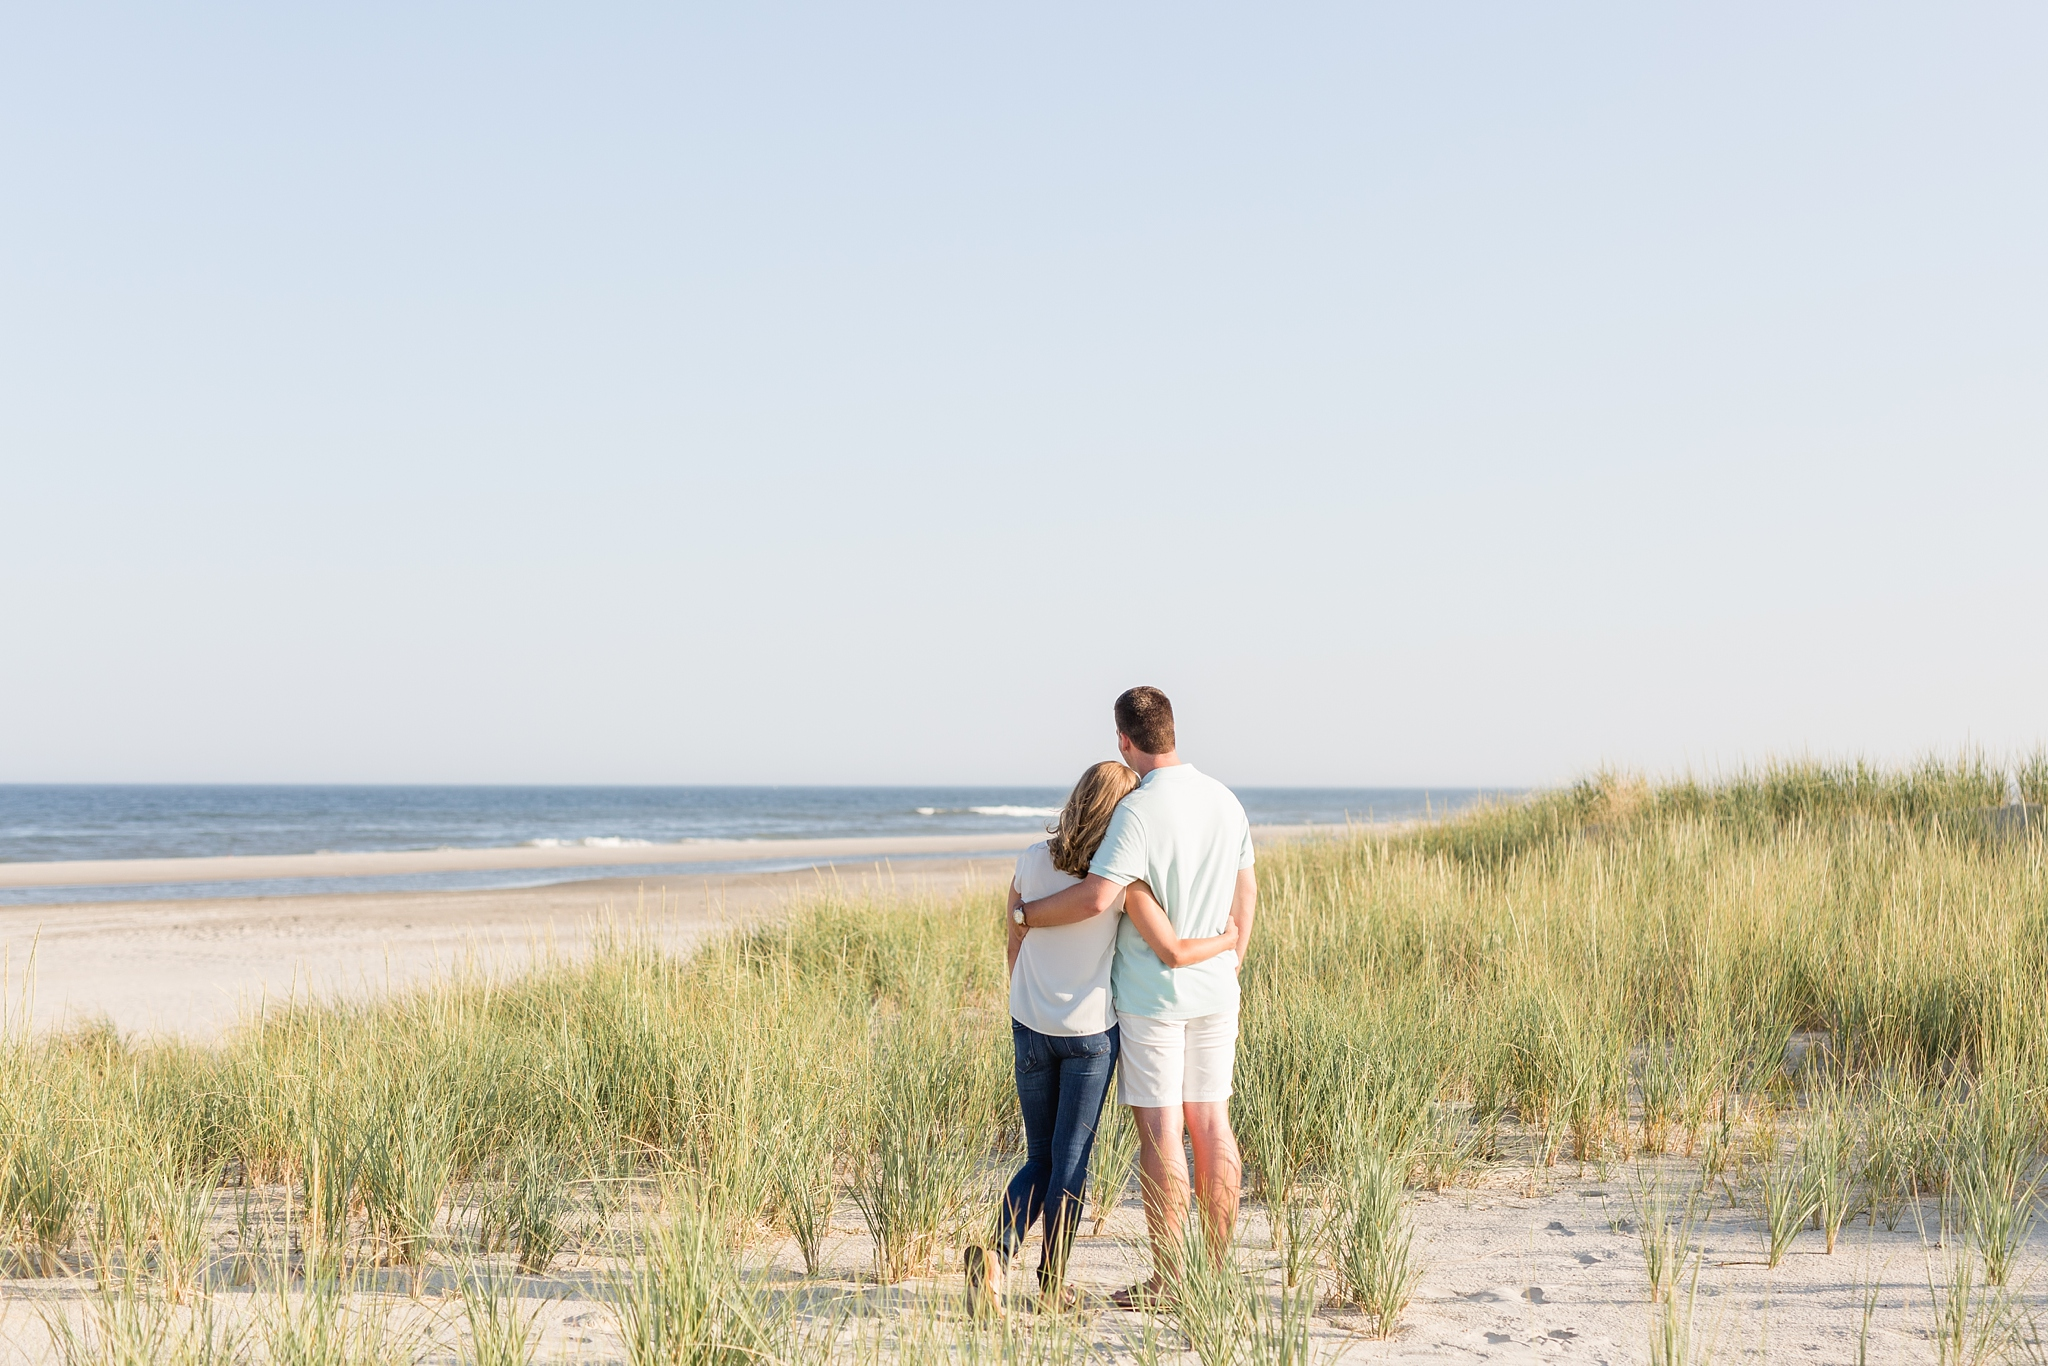 Sea_Isle_City_NJ_Beach_Engagement_Session_03.jpg